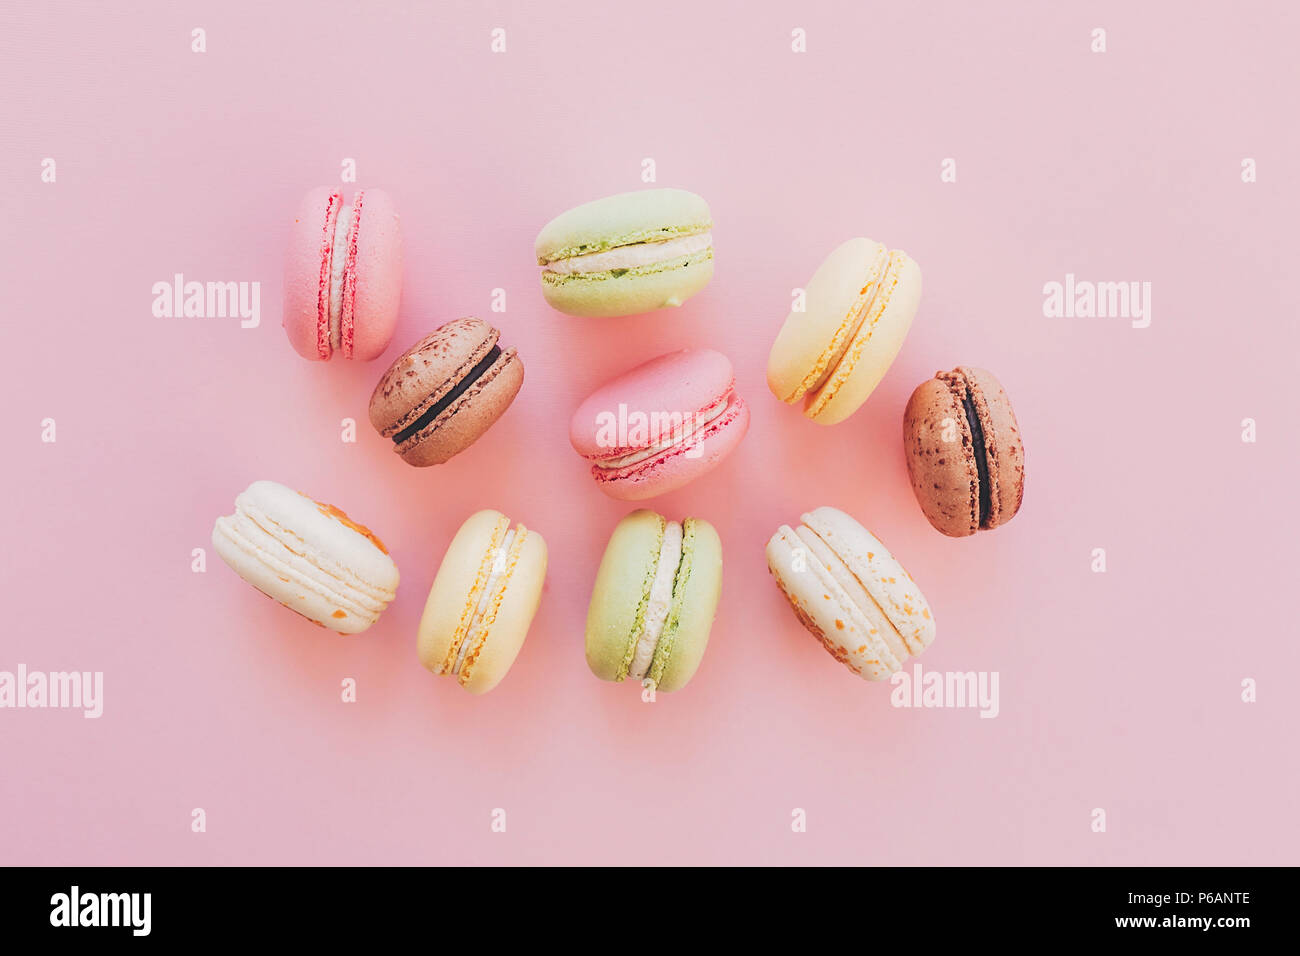 stylish colorful macaroons on trendy pink paper, flat lay. space for text. modern food photography concept. tasty pink, yellow, green, white, brown ma - Stock Image